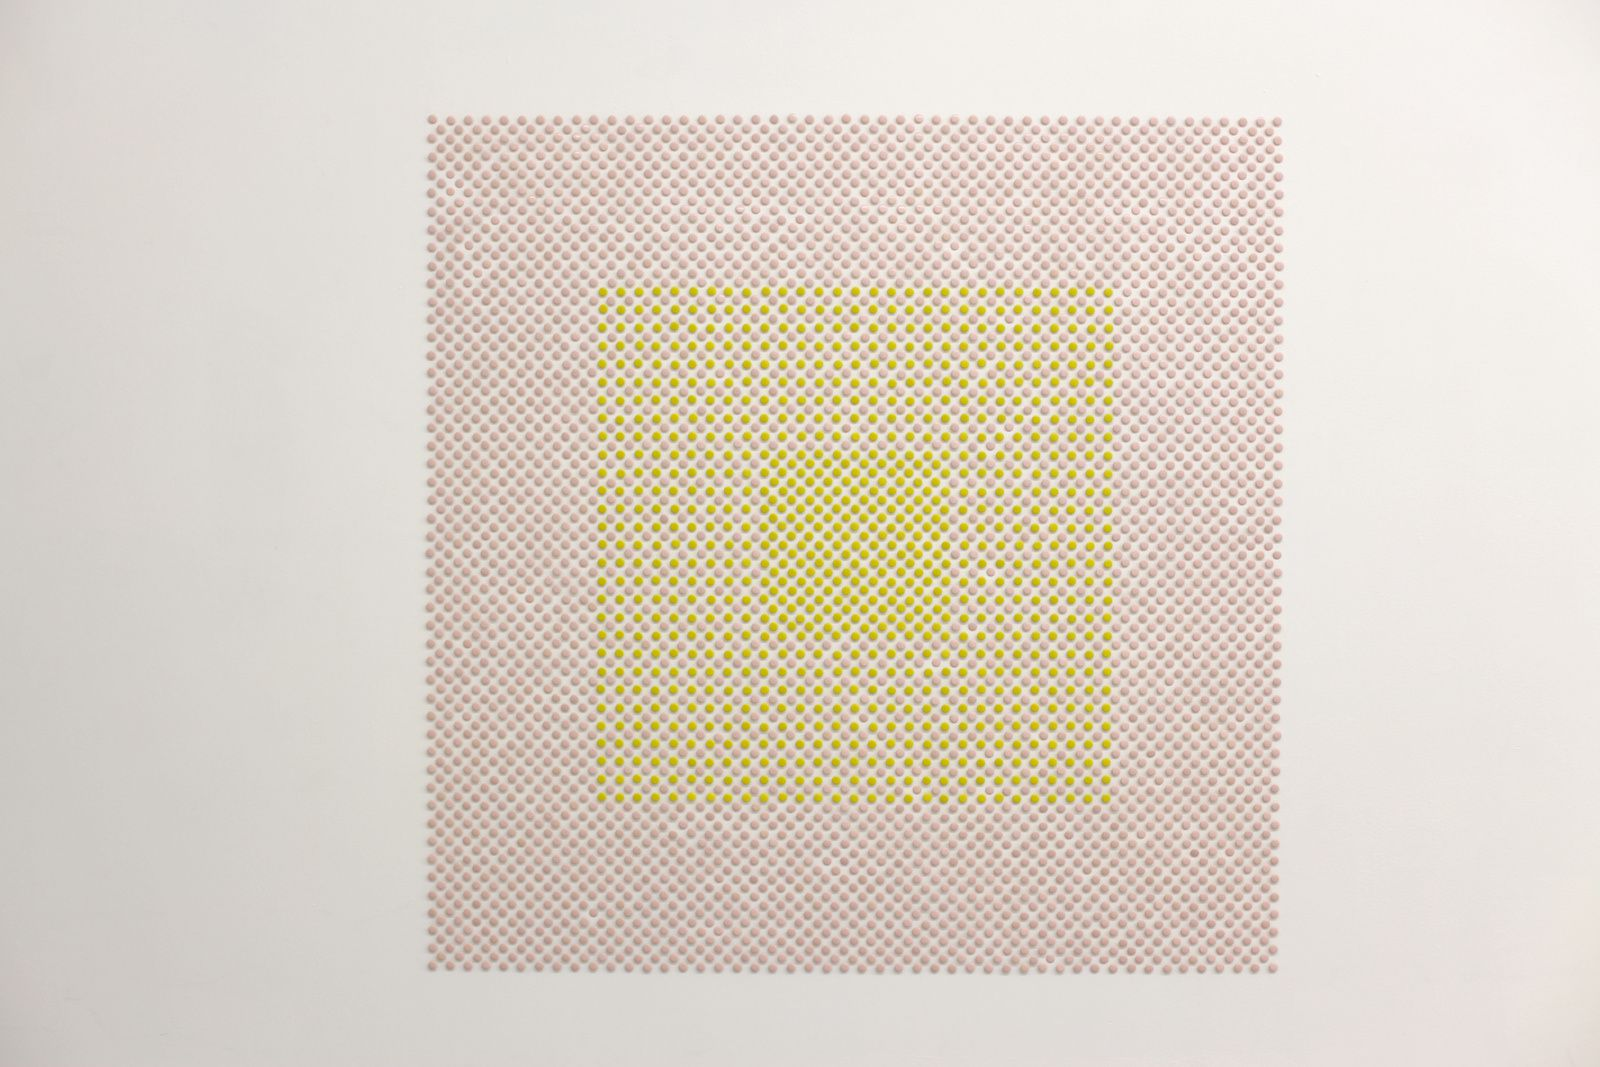 """Peinture en Kit IBK, Pointillisme Abstrait, 3cpj 4513"", 2002 de Benjamin SABATIER - Courtesy Galerie Bertrand GRIMONT © Photo Éric Simon"